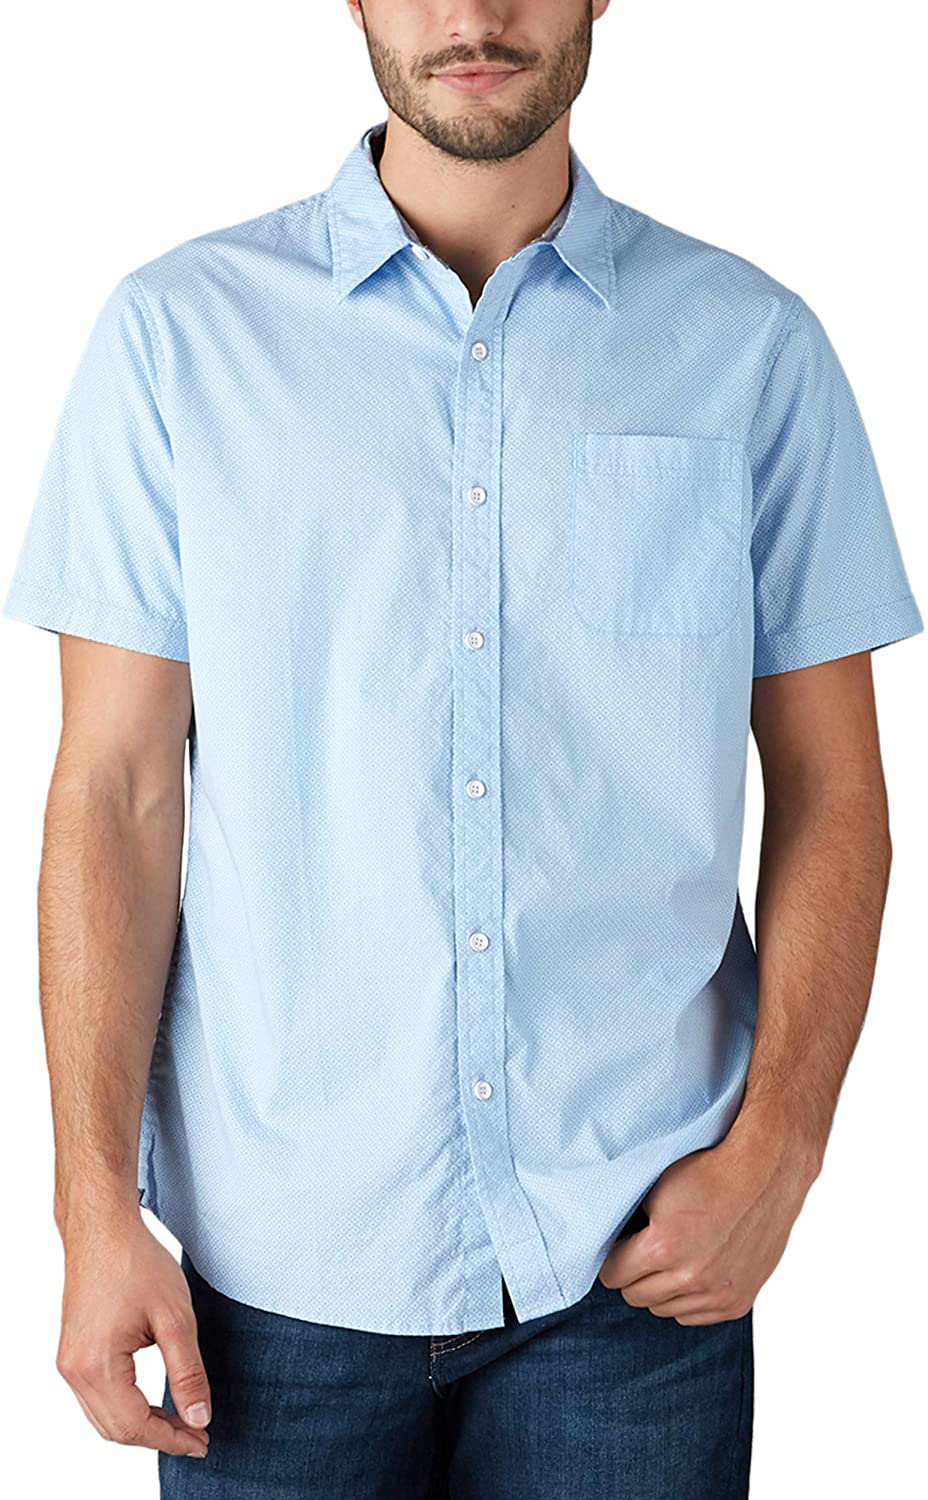 LEE Men's Regular, Big & Tall, Short Sleeve Button Down Printed Stretch Shirt Sky Blue